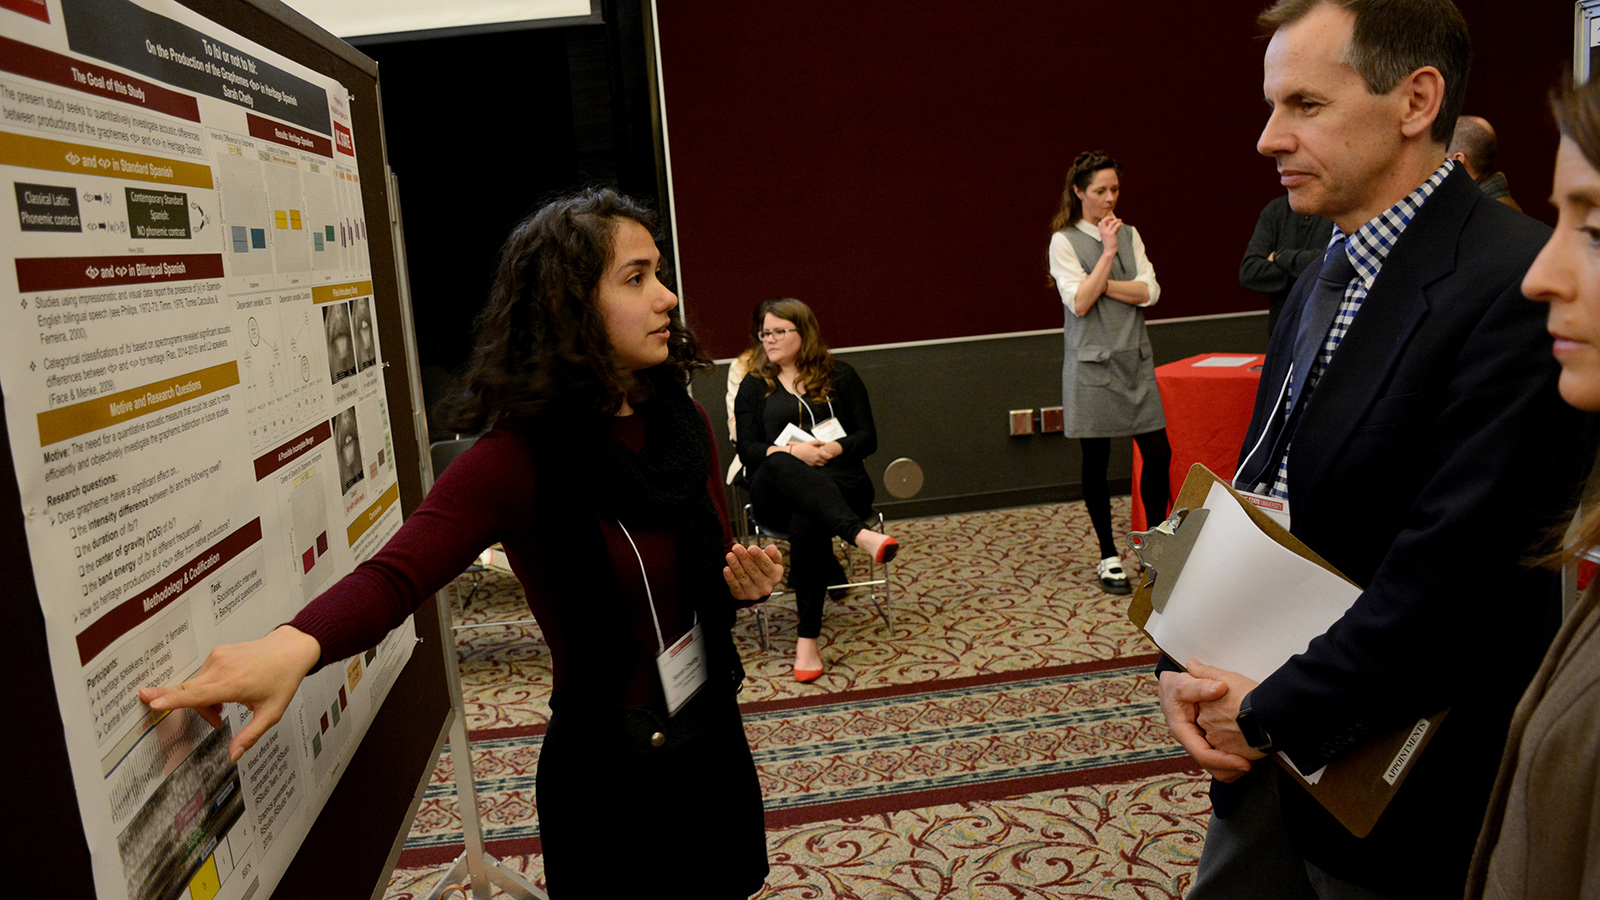 A student points to their poster while talking with two faculty members.